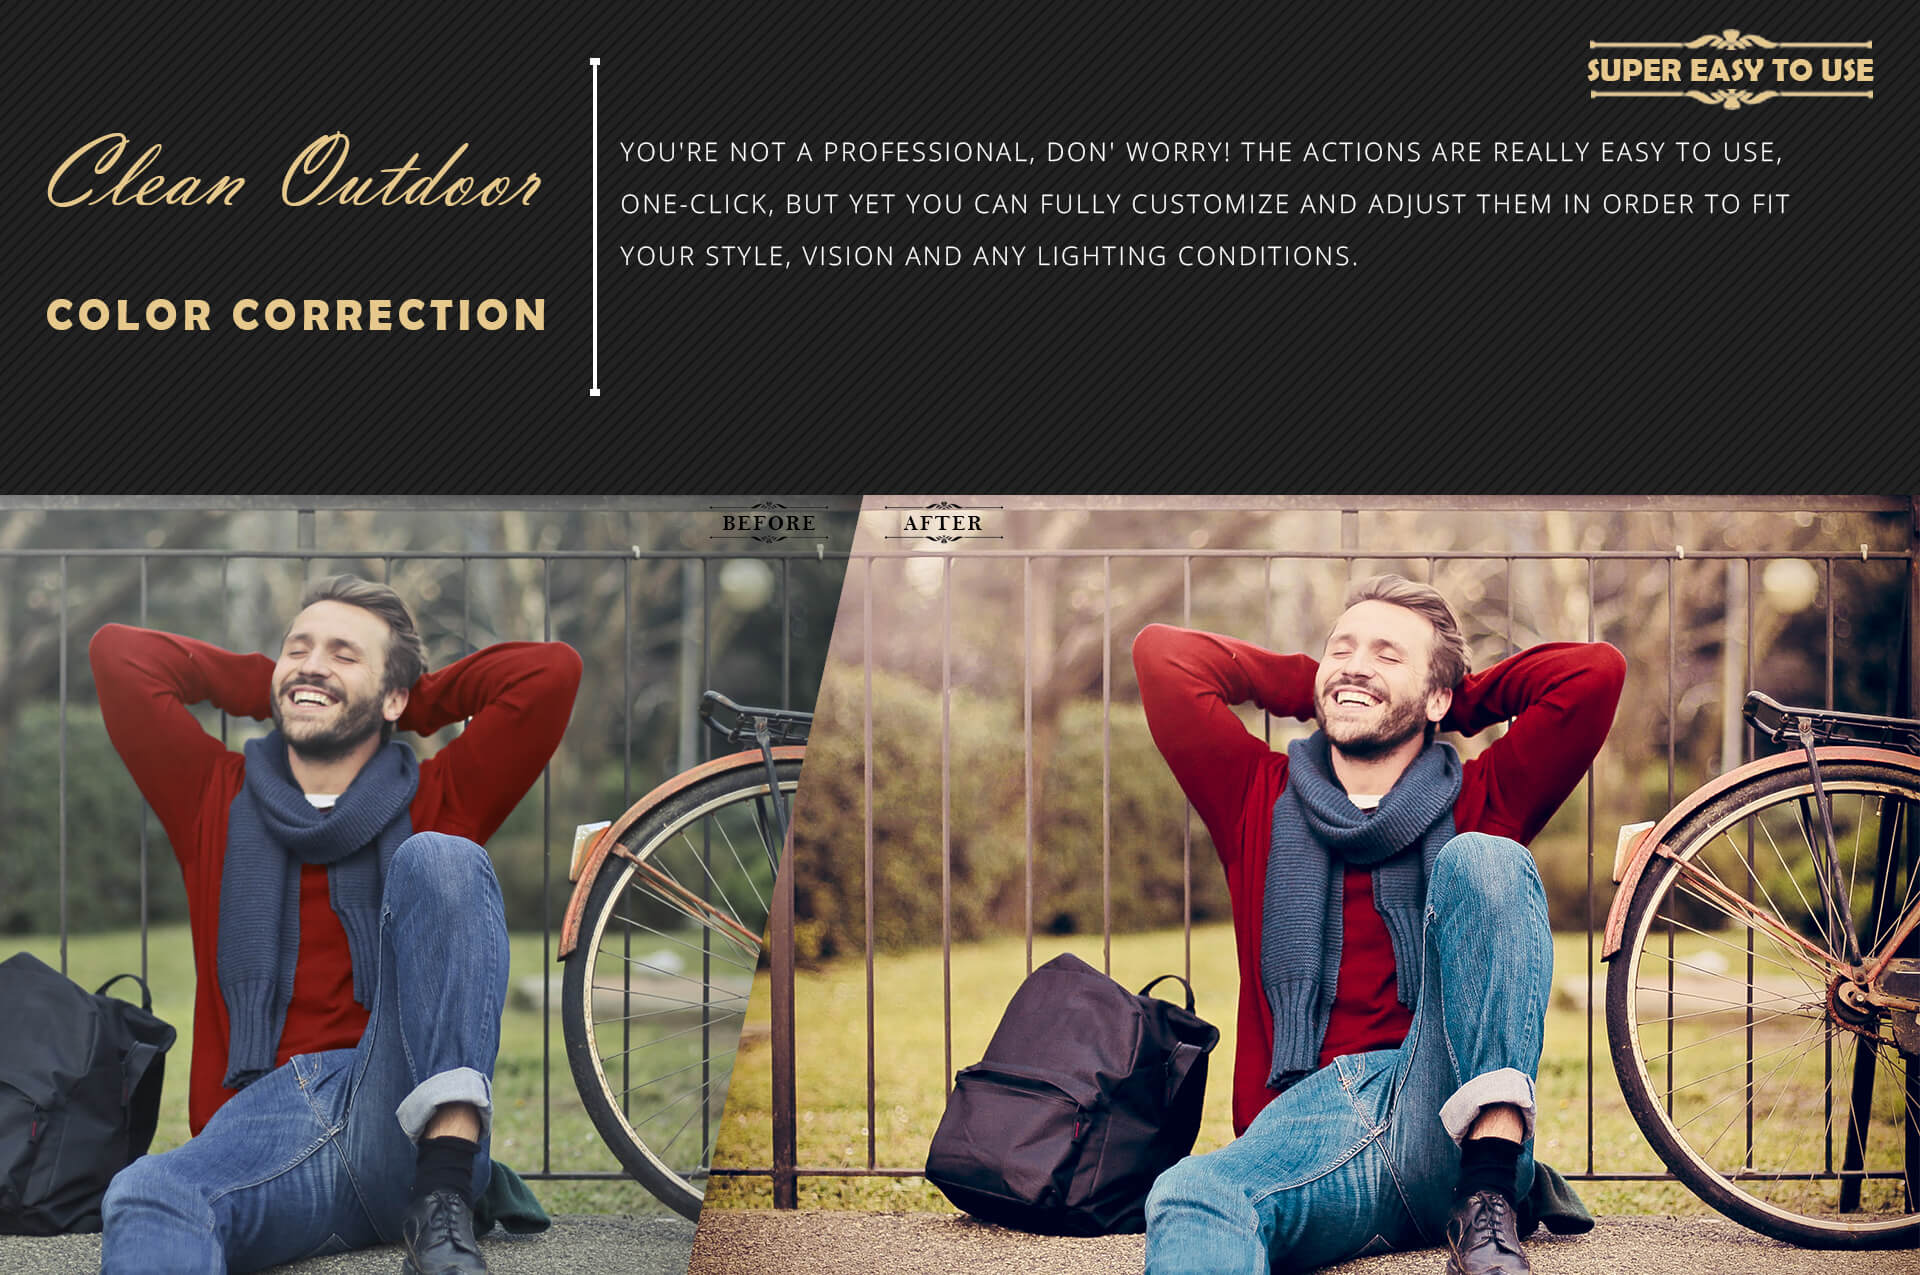 Neo Clean Outdoor Color grading Photoshop Actions example image 5